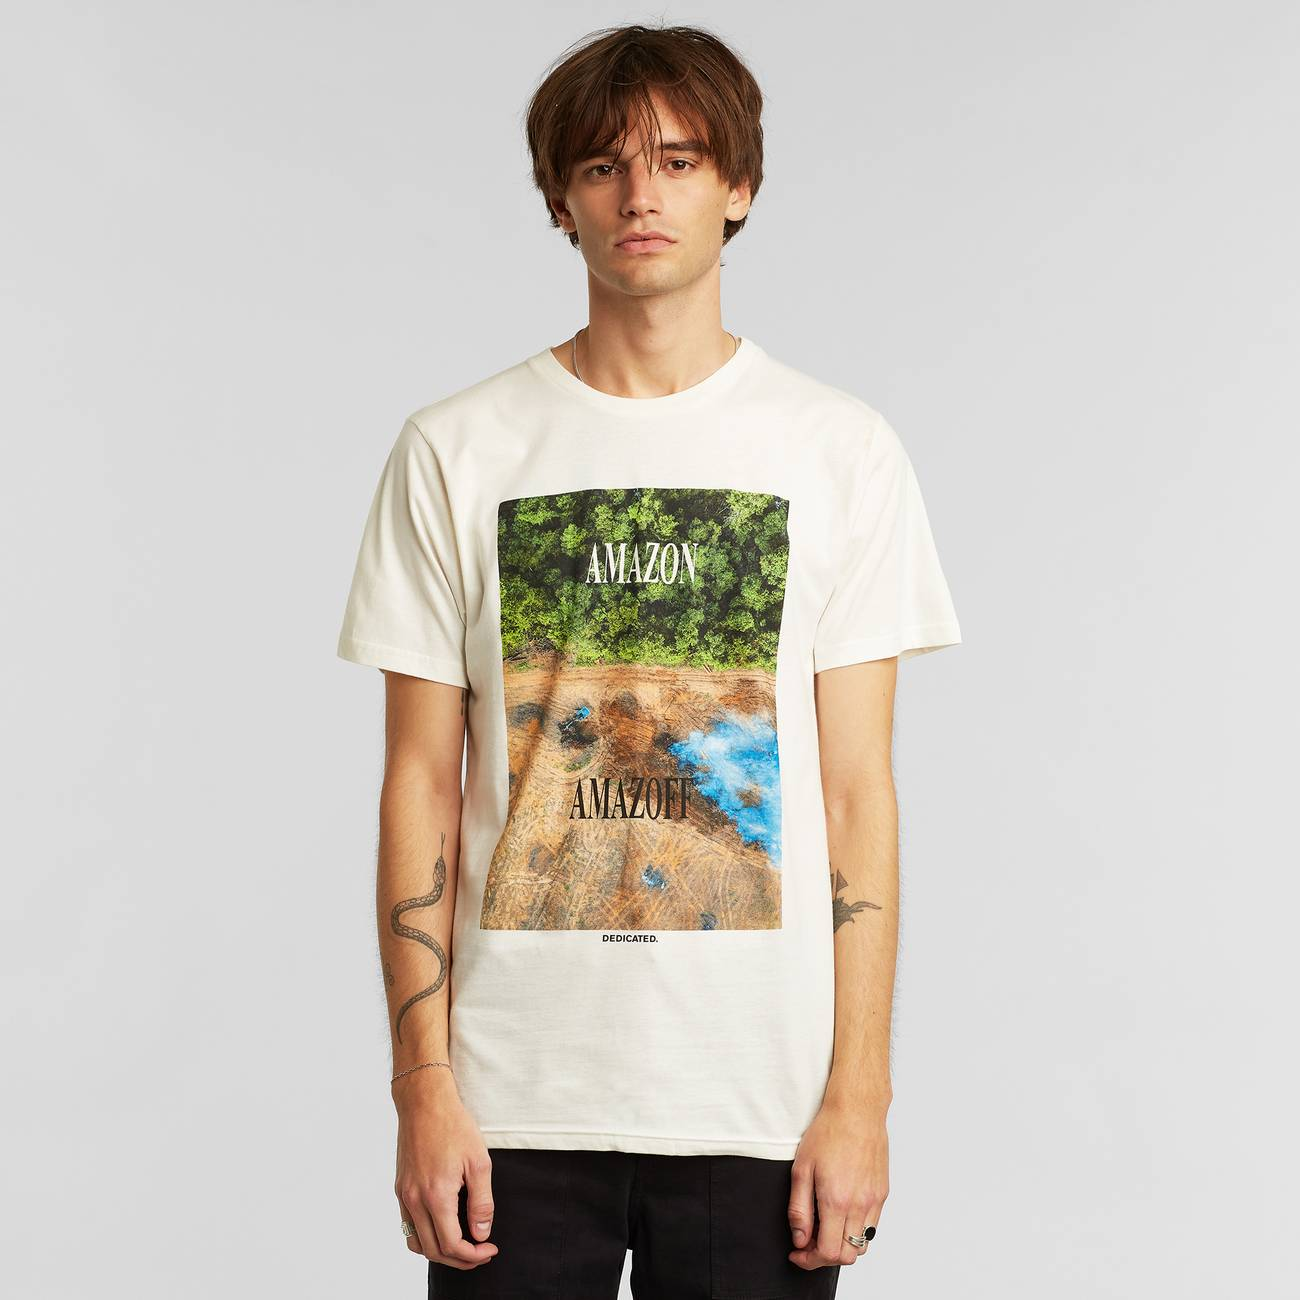 dedicated Bio T shirt Stockholm Amazoff A